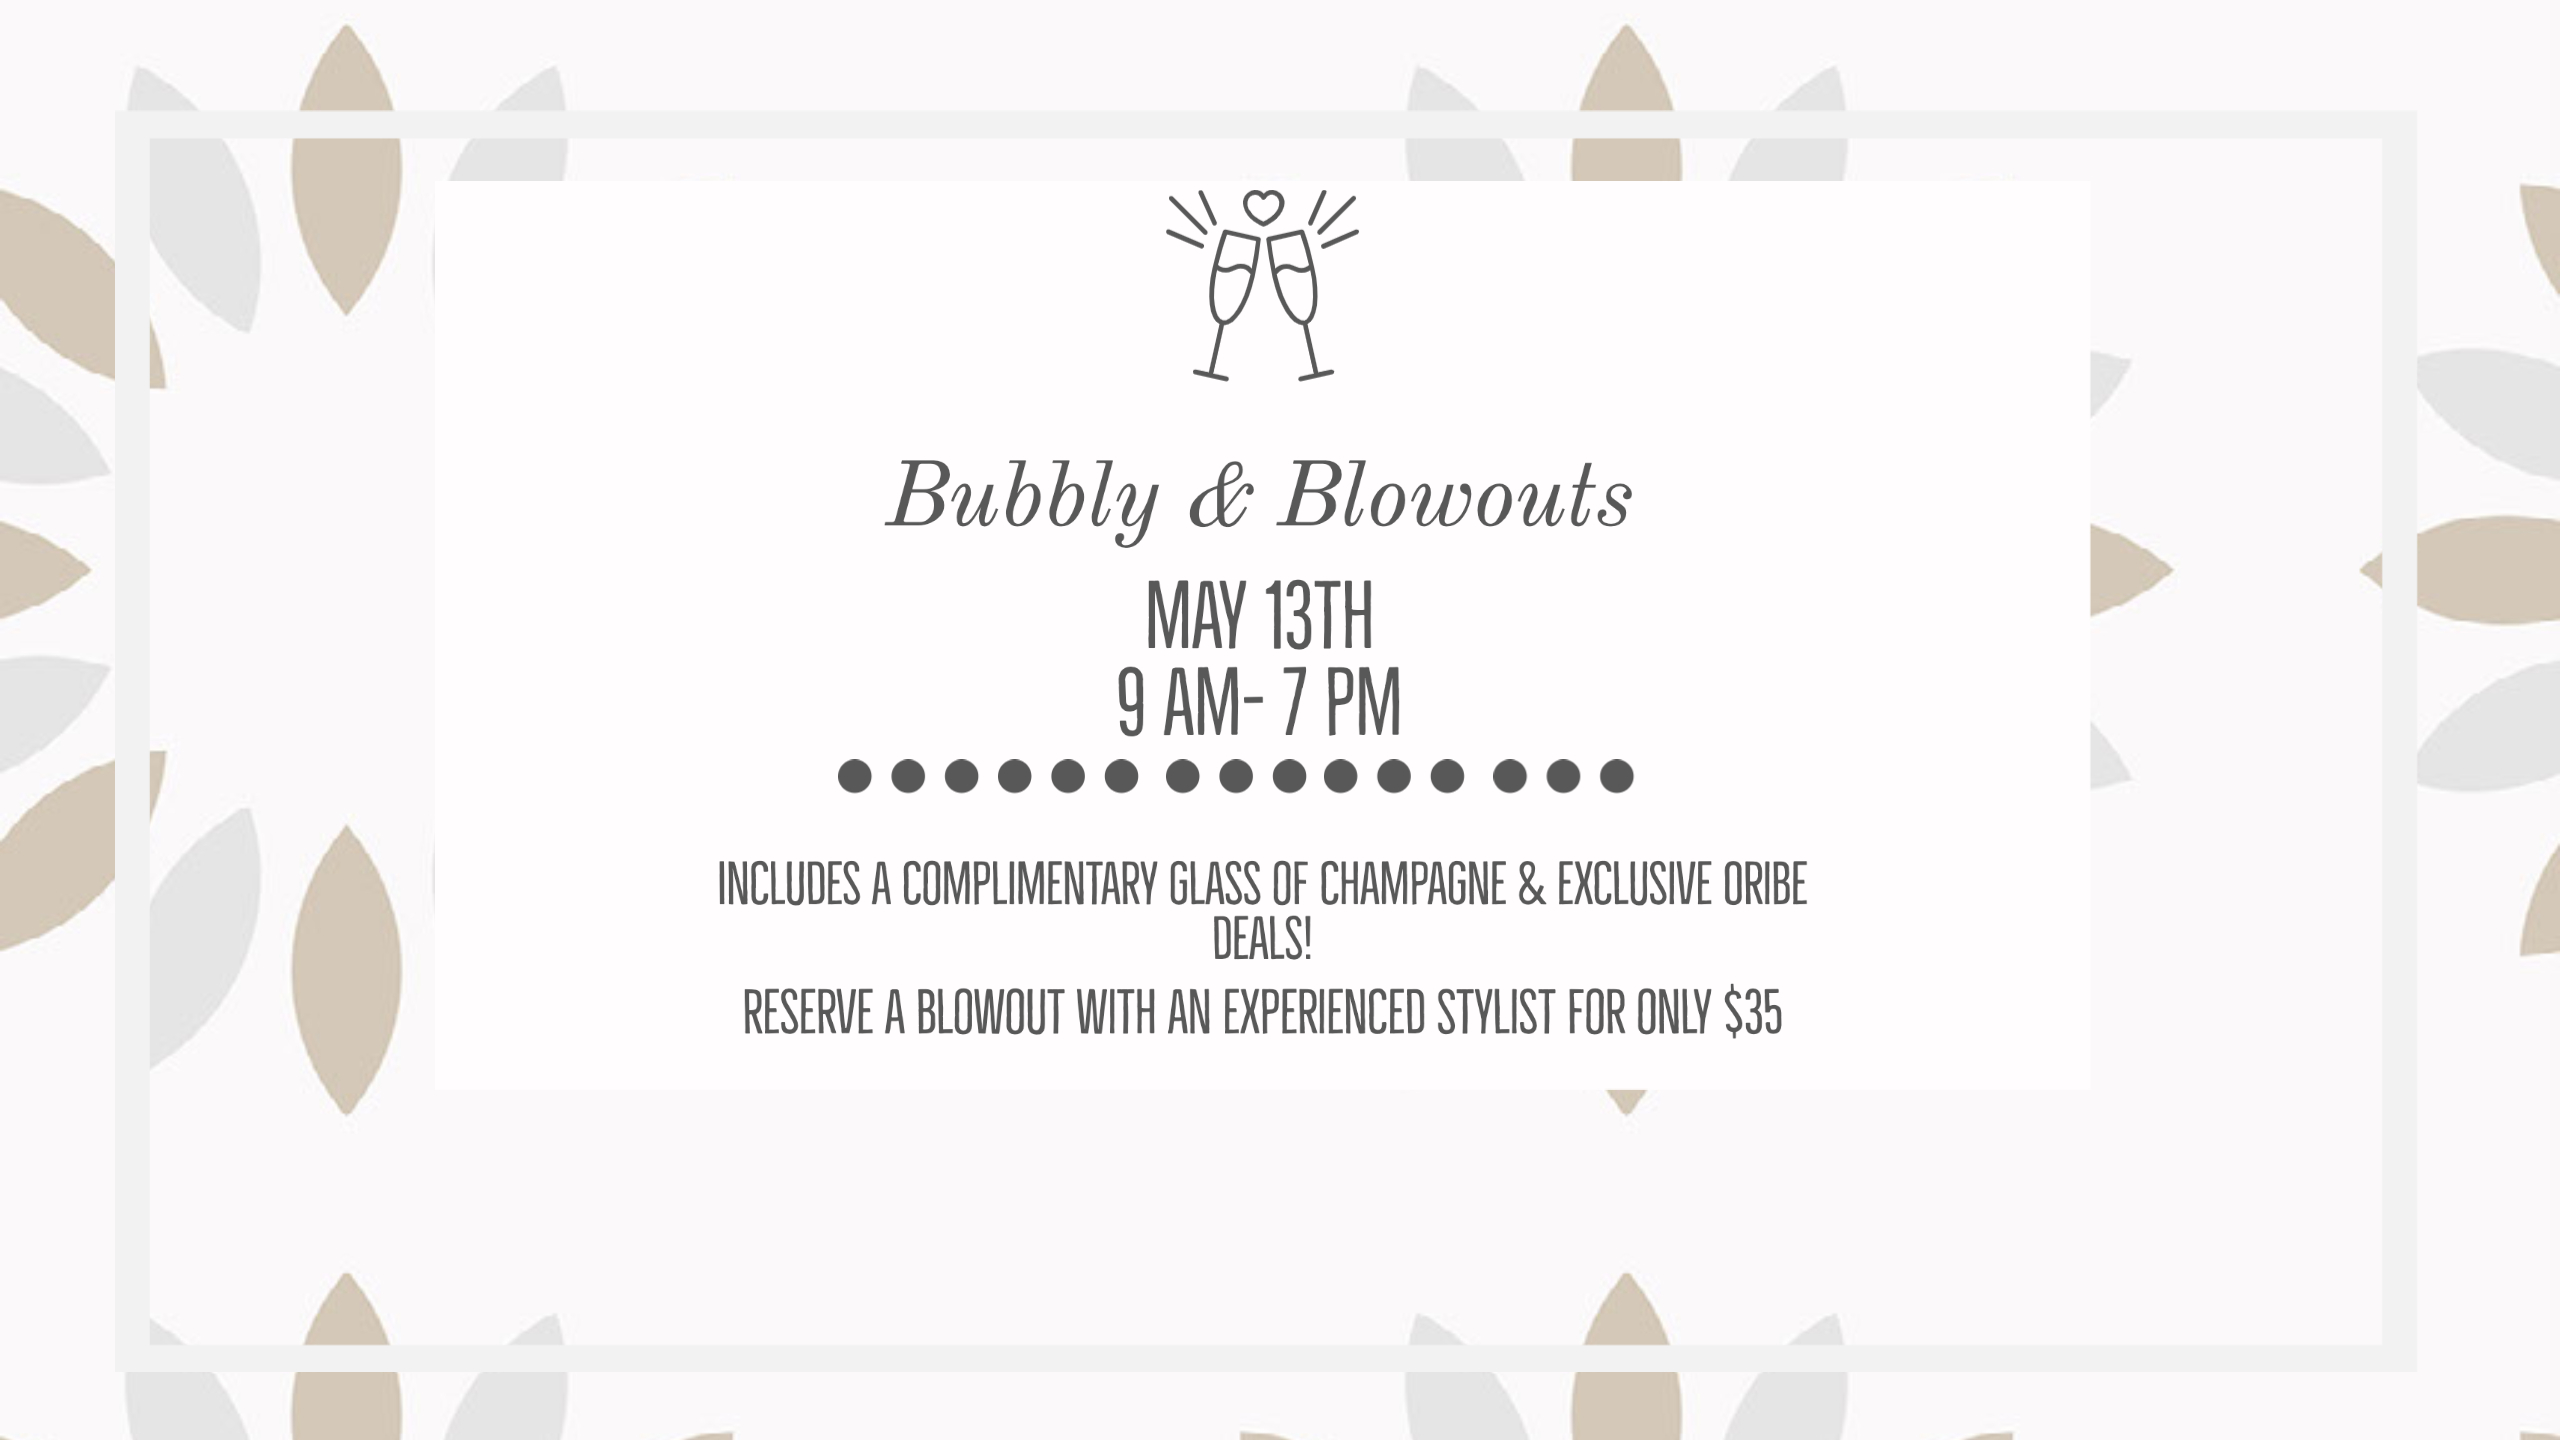 Bubbly & Blowout May